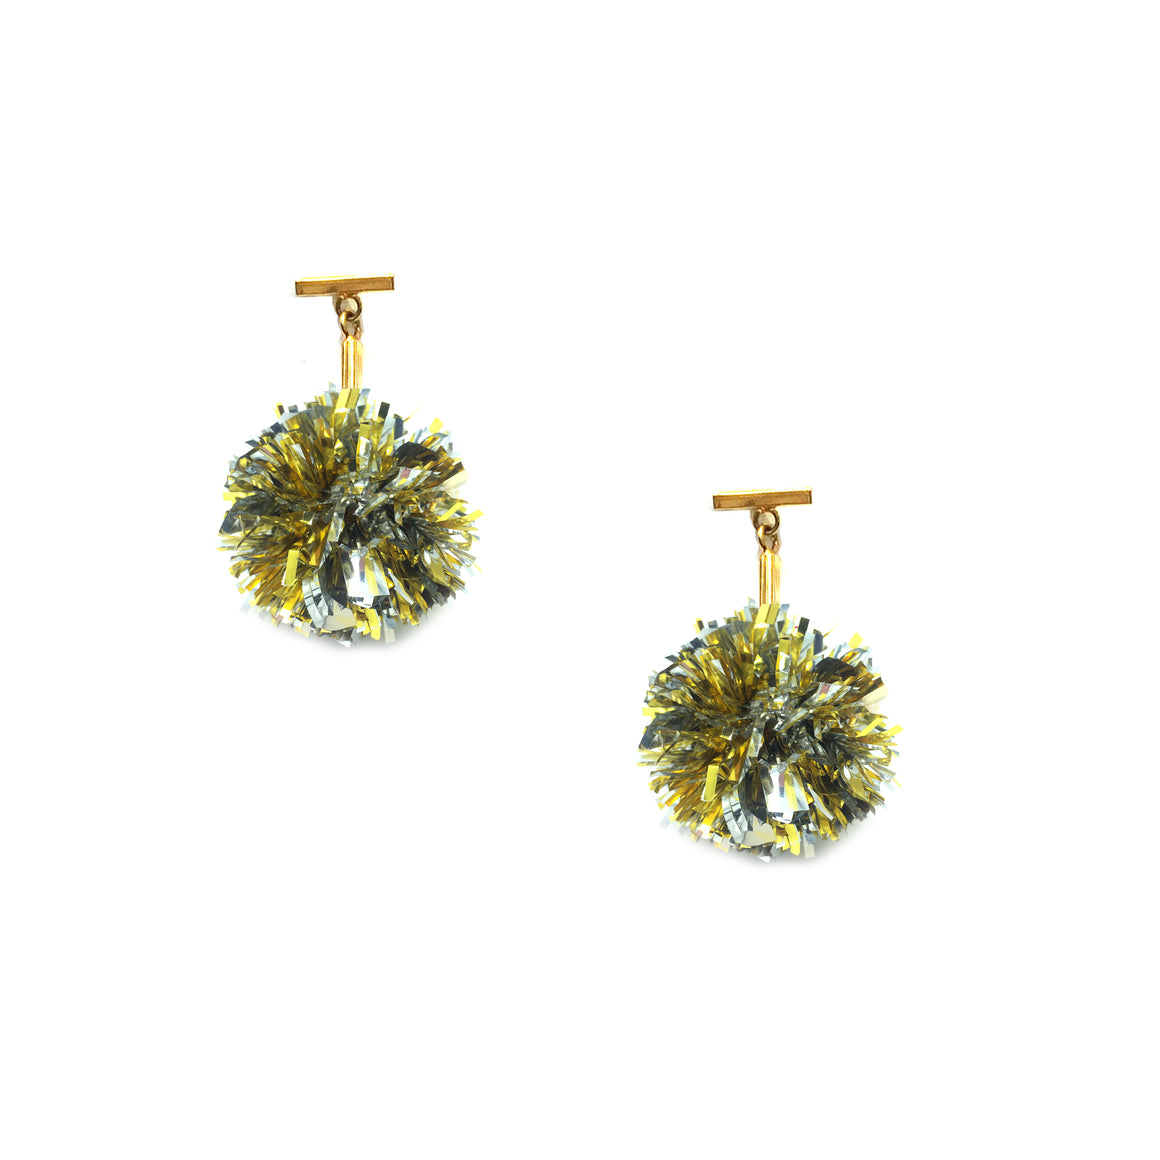 "1"" Gold and Silver Lurex Pom Pom T Stud Earrings"